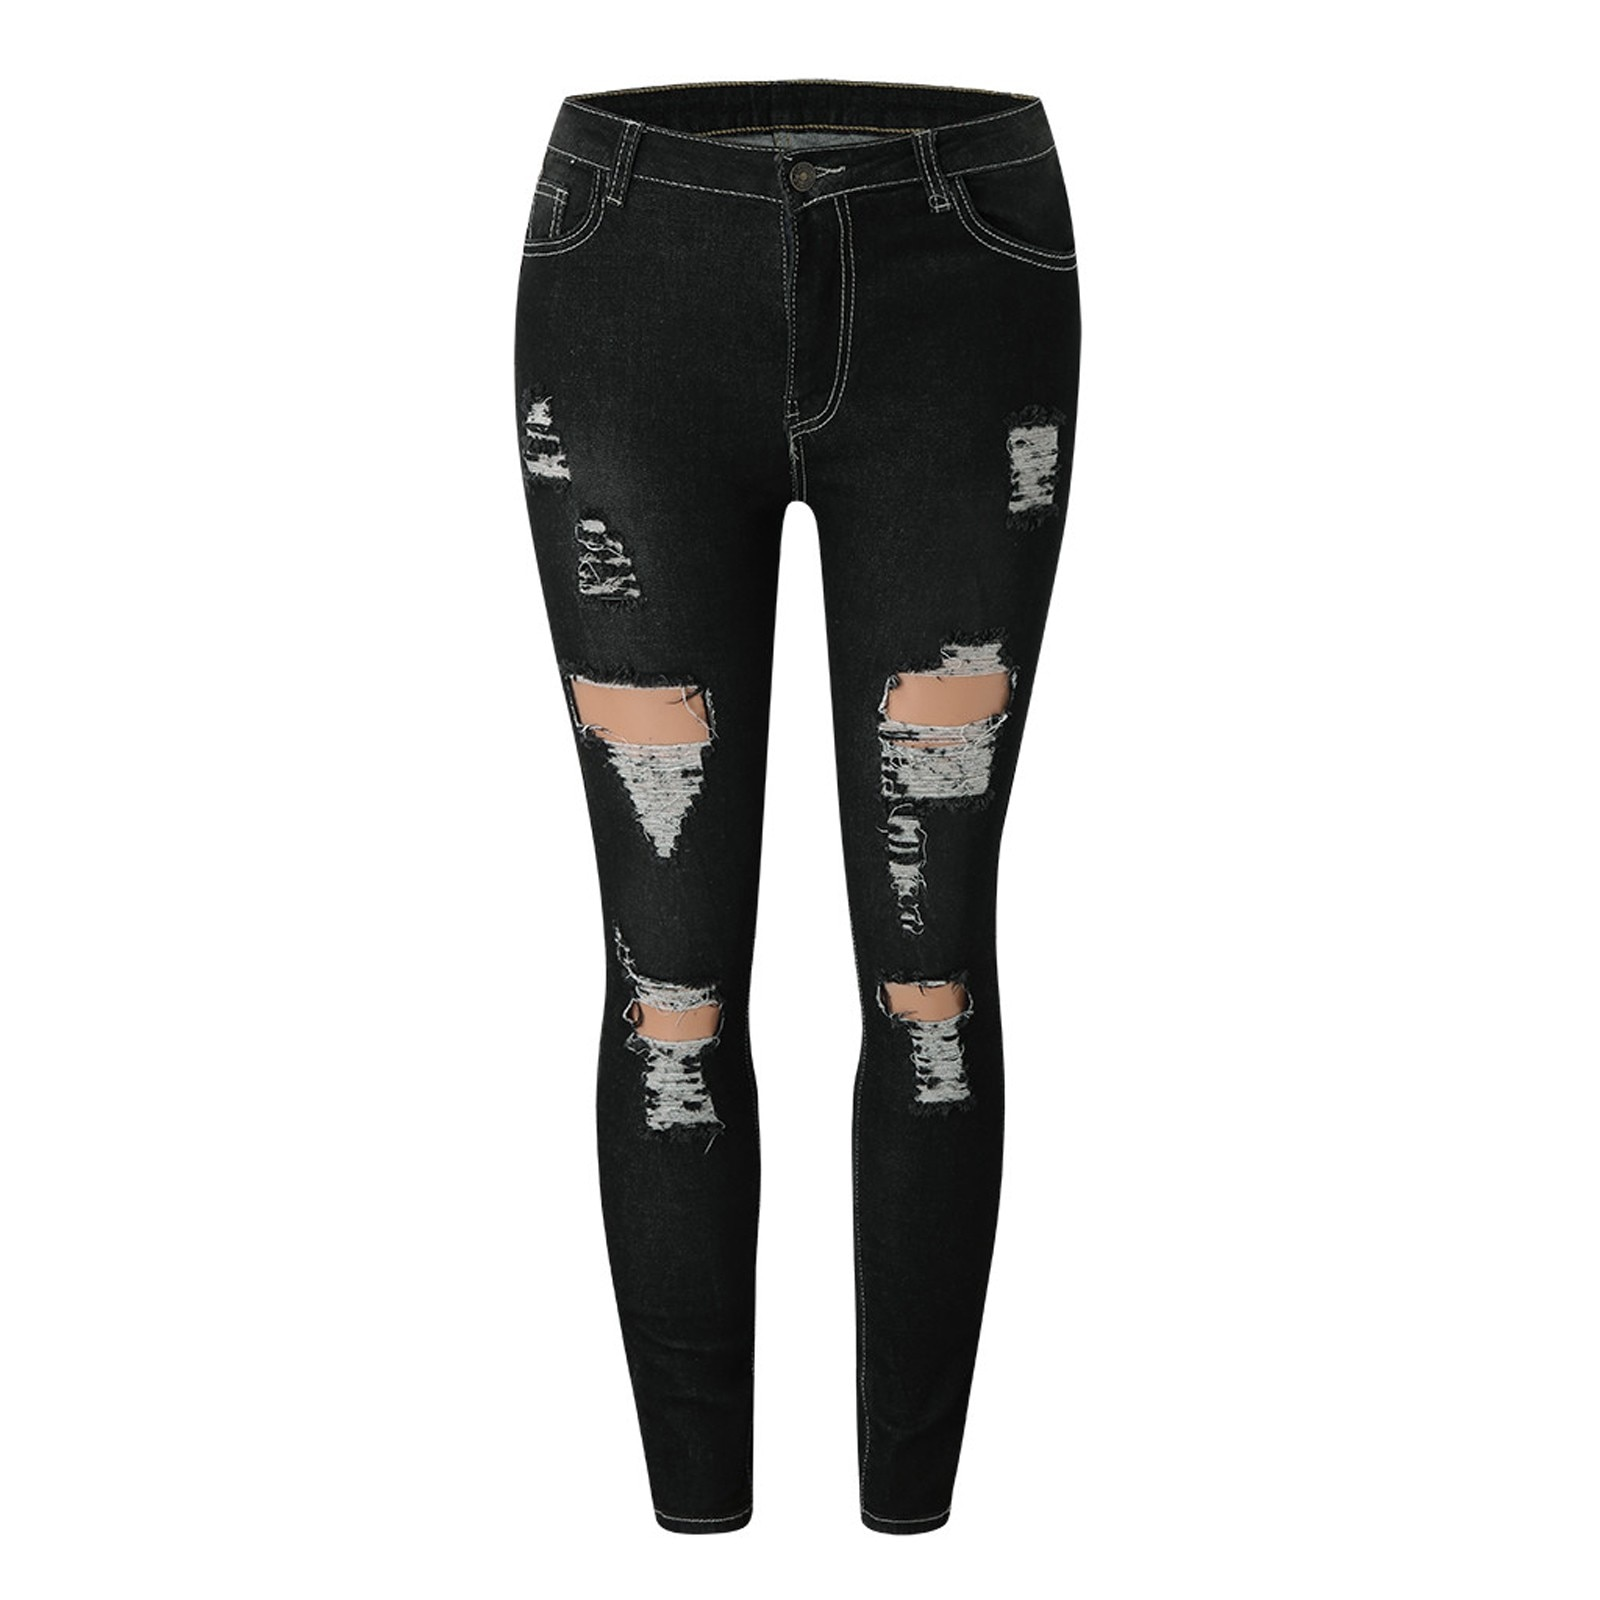 Black Ripped Jeans For Women Street Style Sexy High Waist Distressed Trouser Stretch Skinny Hole Denim Pencil Pants 2021 #4